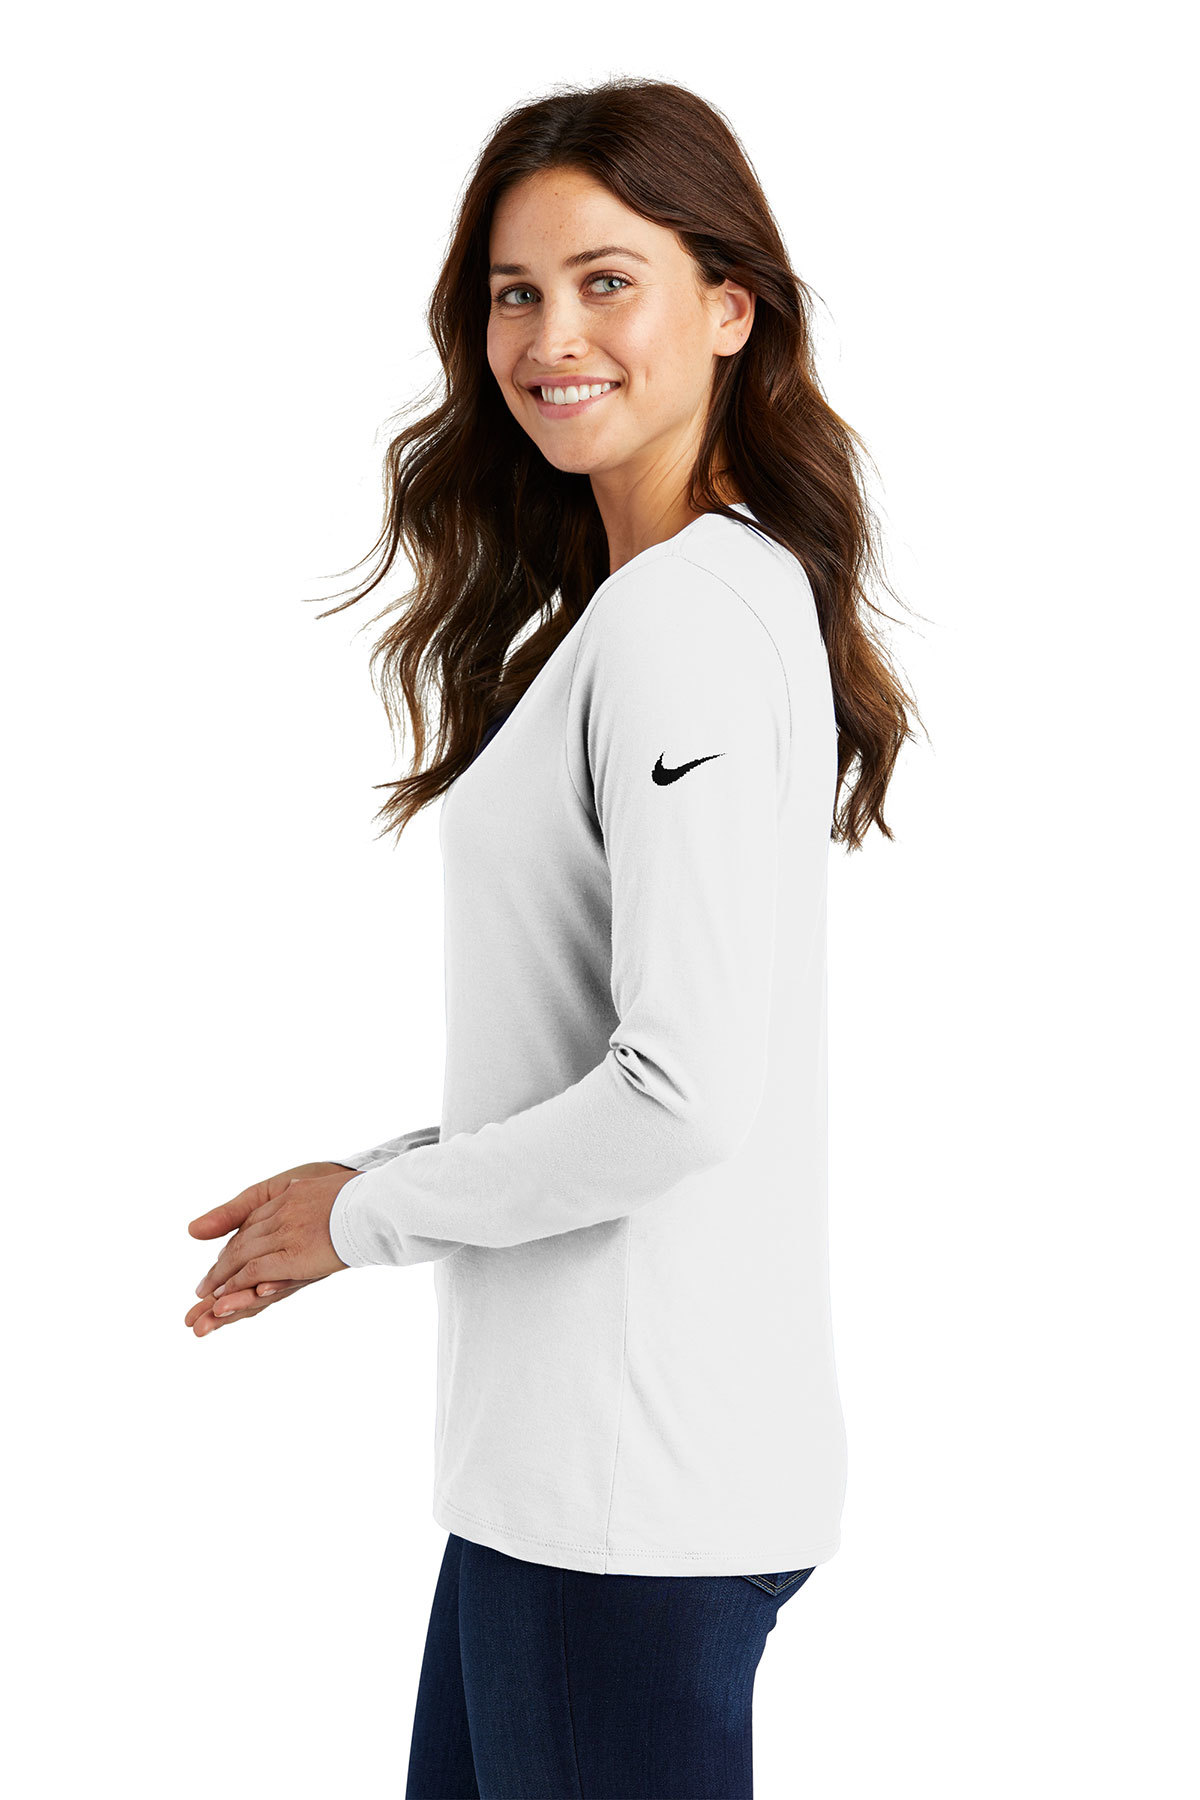 Top of the World Womens Trim Modern Fit Premium Triblend Long Sleeve Scoop Neck Team Color Tee